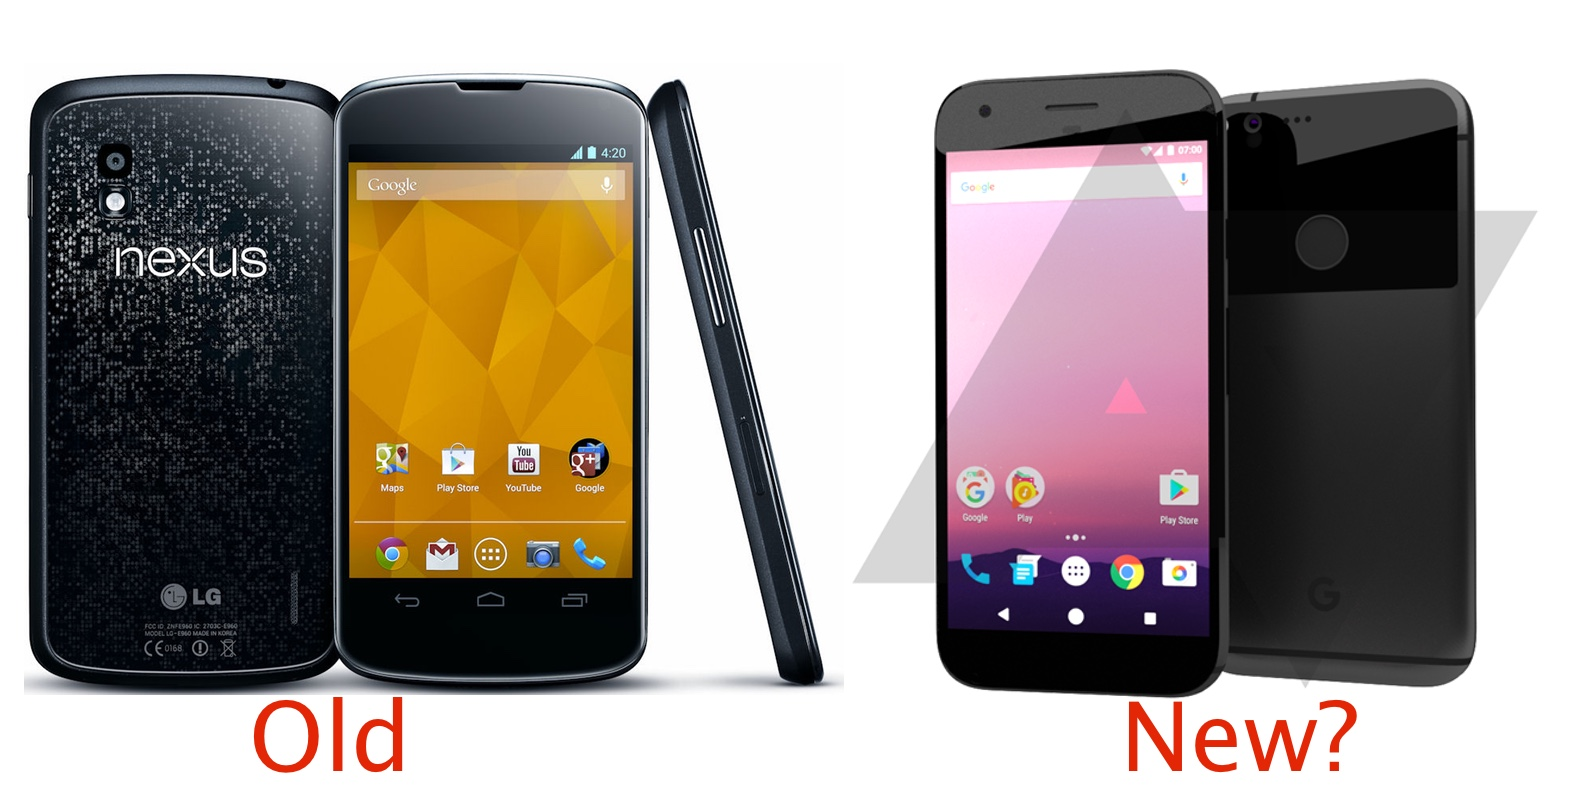 Google's HTC-built 2016 Nexus looks like the 2012 Nexus 4